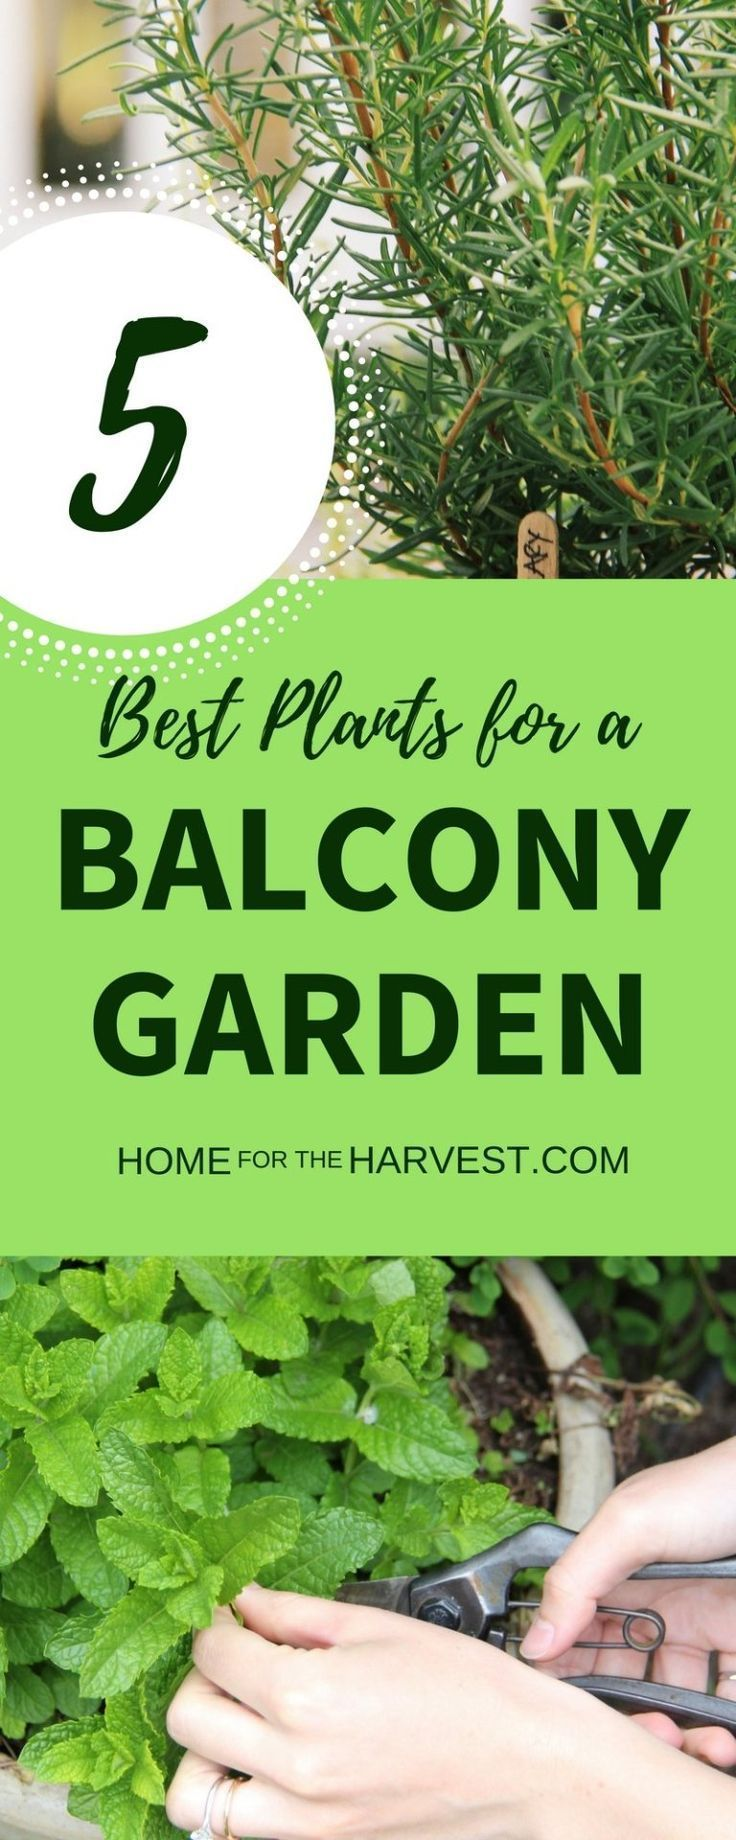 5 Best Edible Plants for a Balcony Garden | Home for the Harvest #besthomegardens    More and more people want to manage their own balcony garden sustainably. Because: organic gardening is good for the Urban Climate and biodiversity, protects our wallet and improves our ecological footprint. We have compiled the six most important tips for you about the organic balcony garden.    Buy high quality Earth for your balcony garde... #Balcony #besthomegarden #Edible #Garden #harvest #Home #Plants